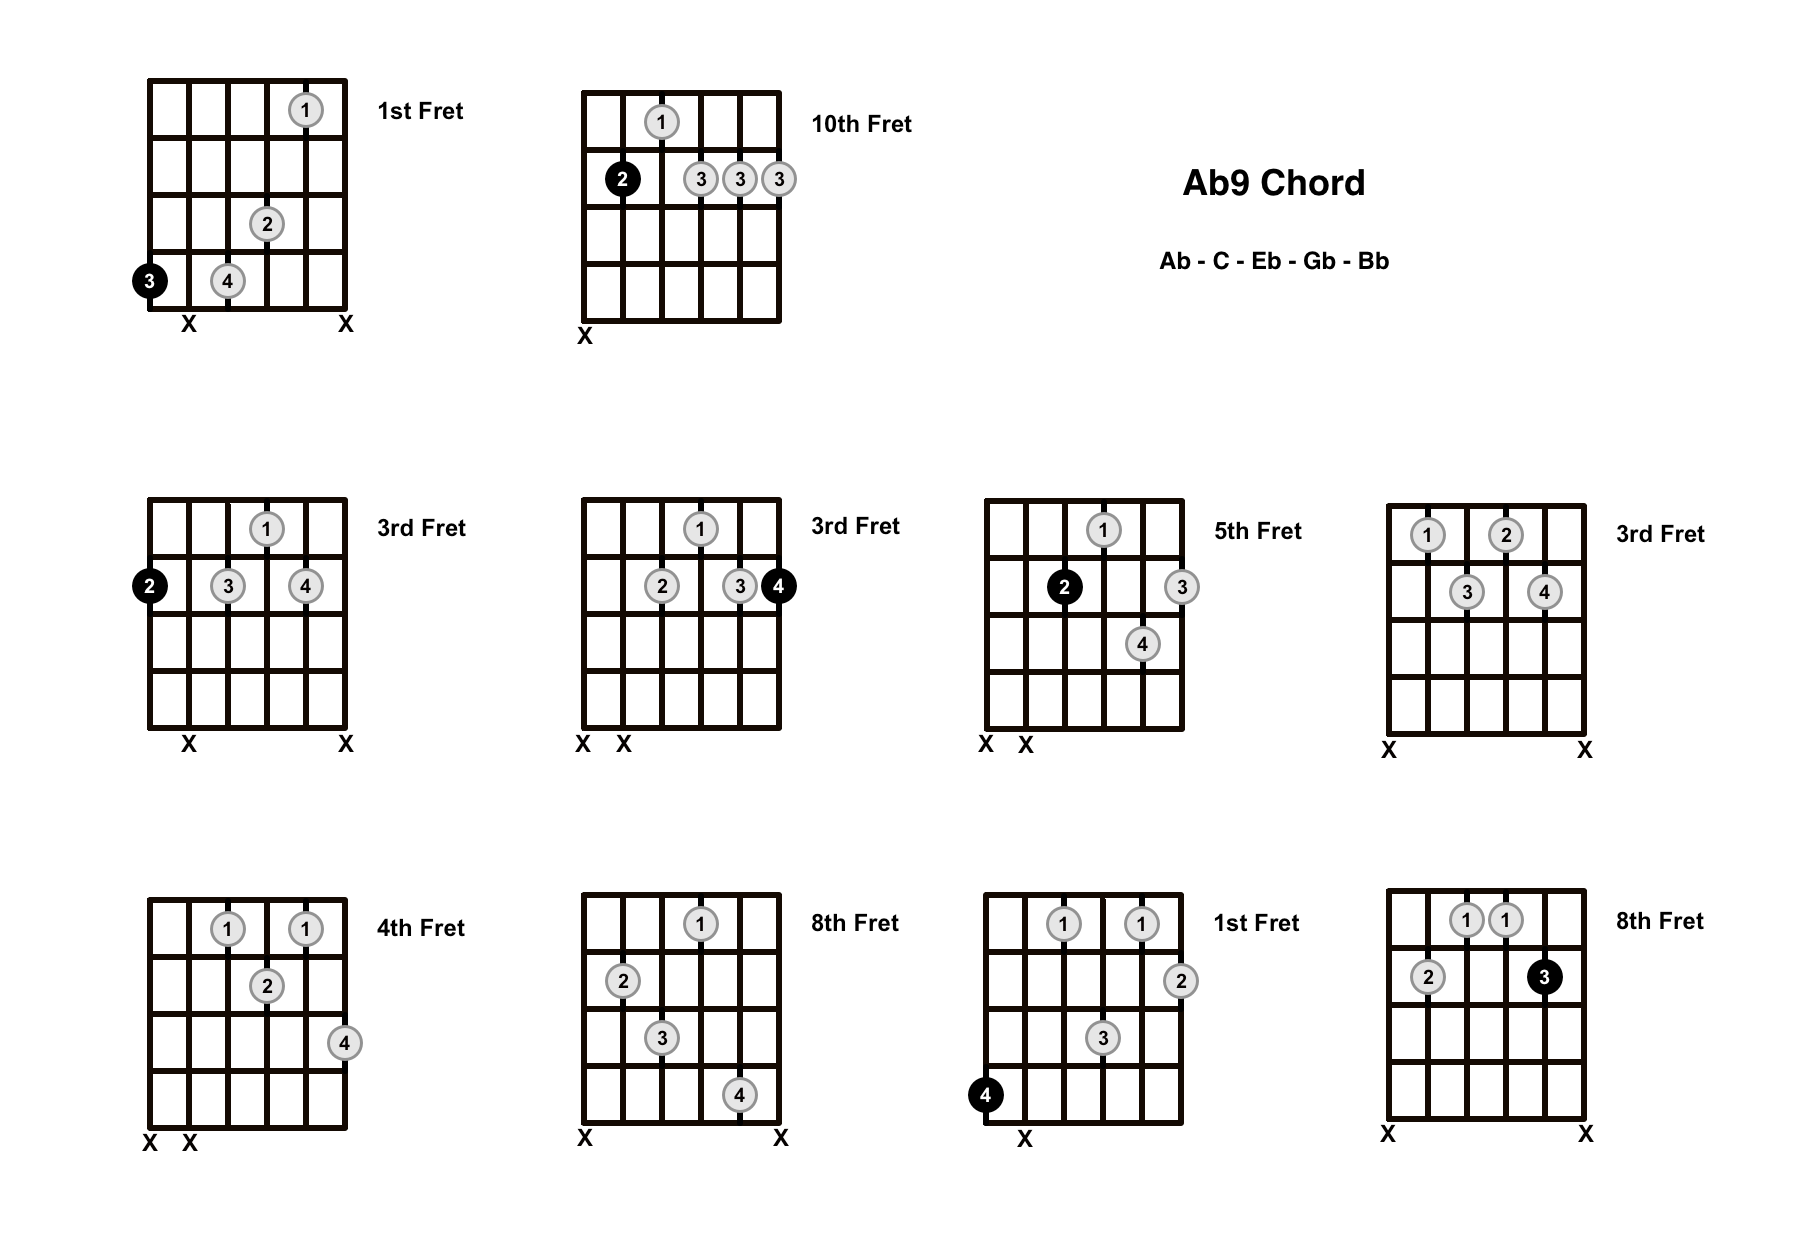 Ab9 Chord On The Guitar (A Flat 9) – Diagrams, Finger Positions and Theory